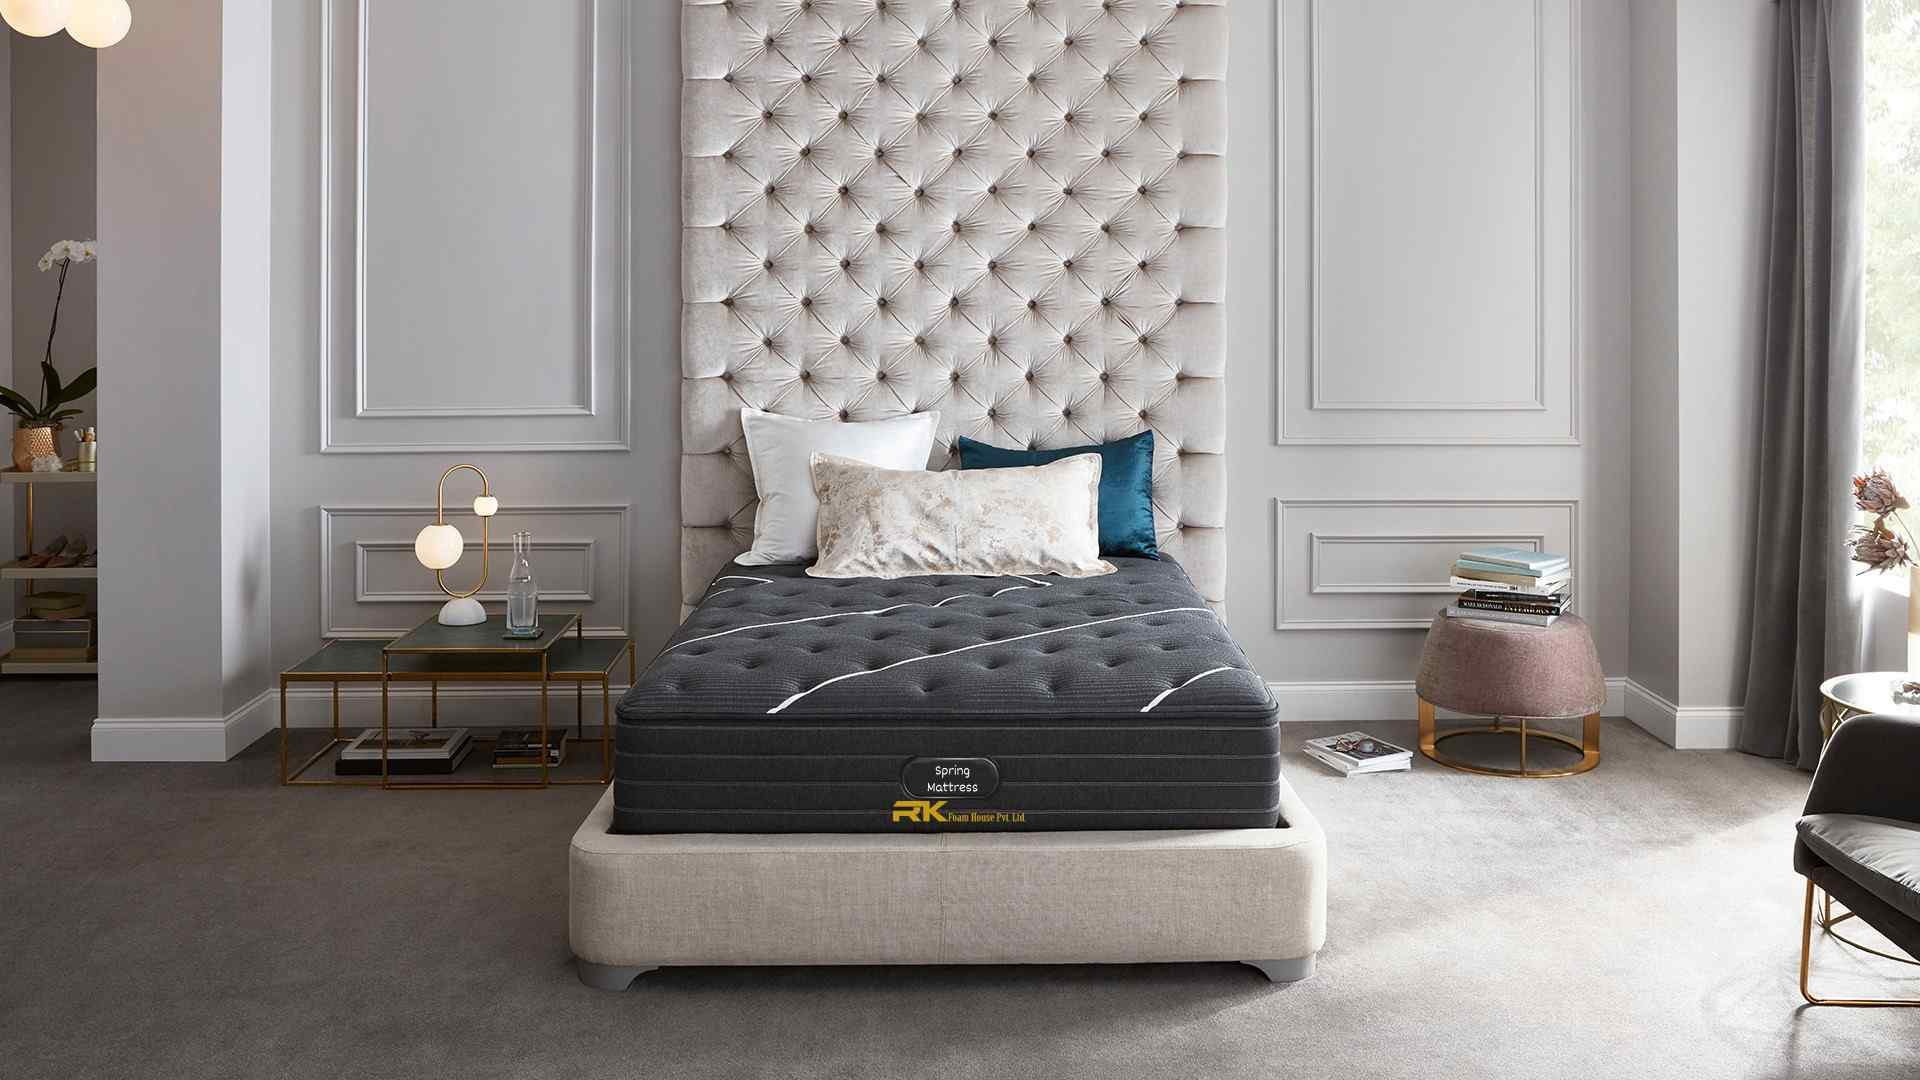 Refresh Mattress